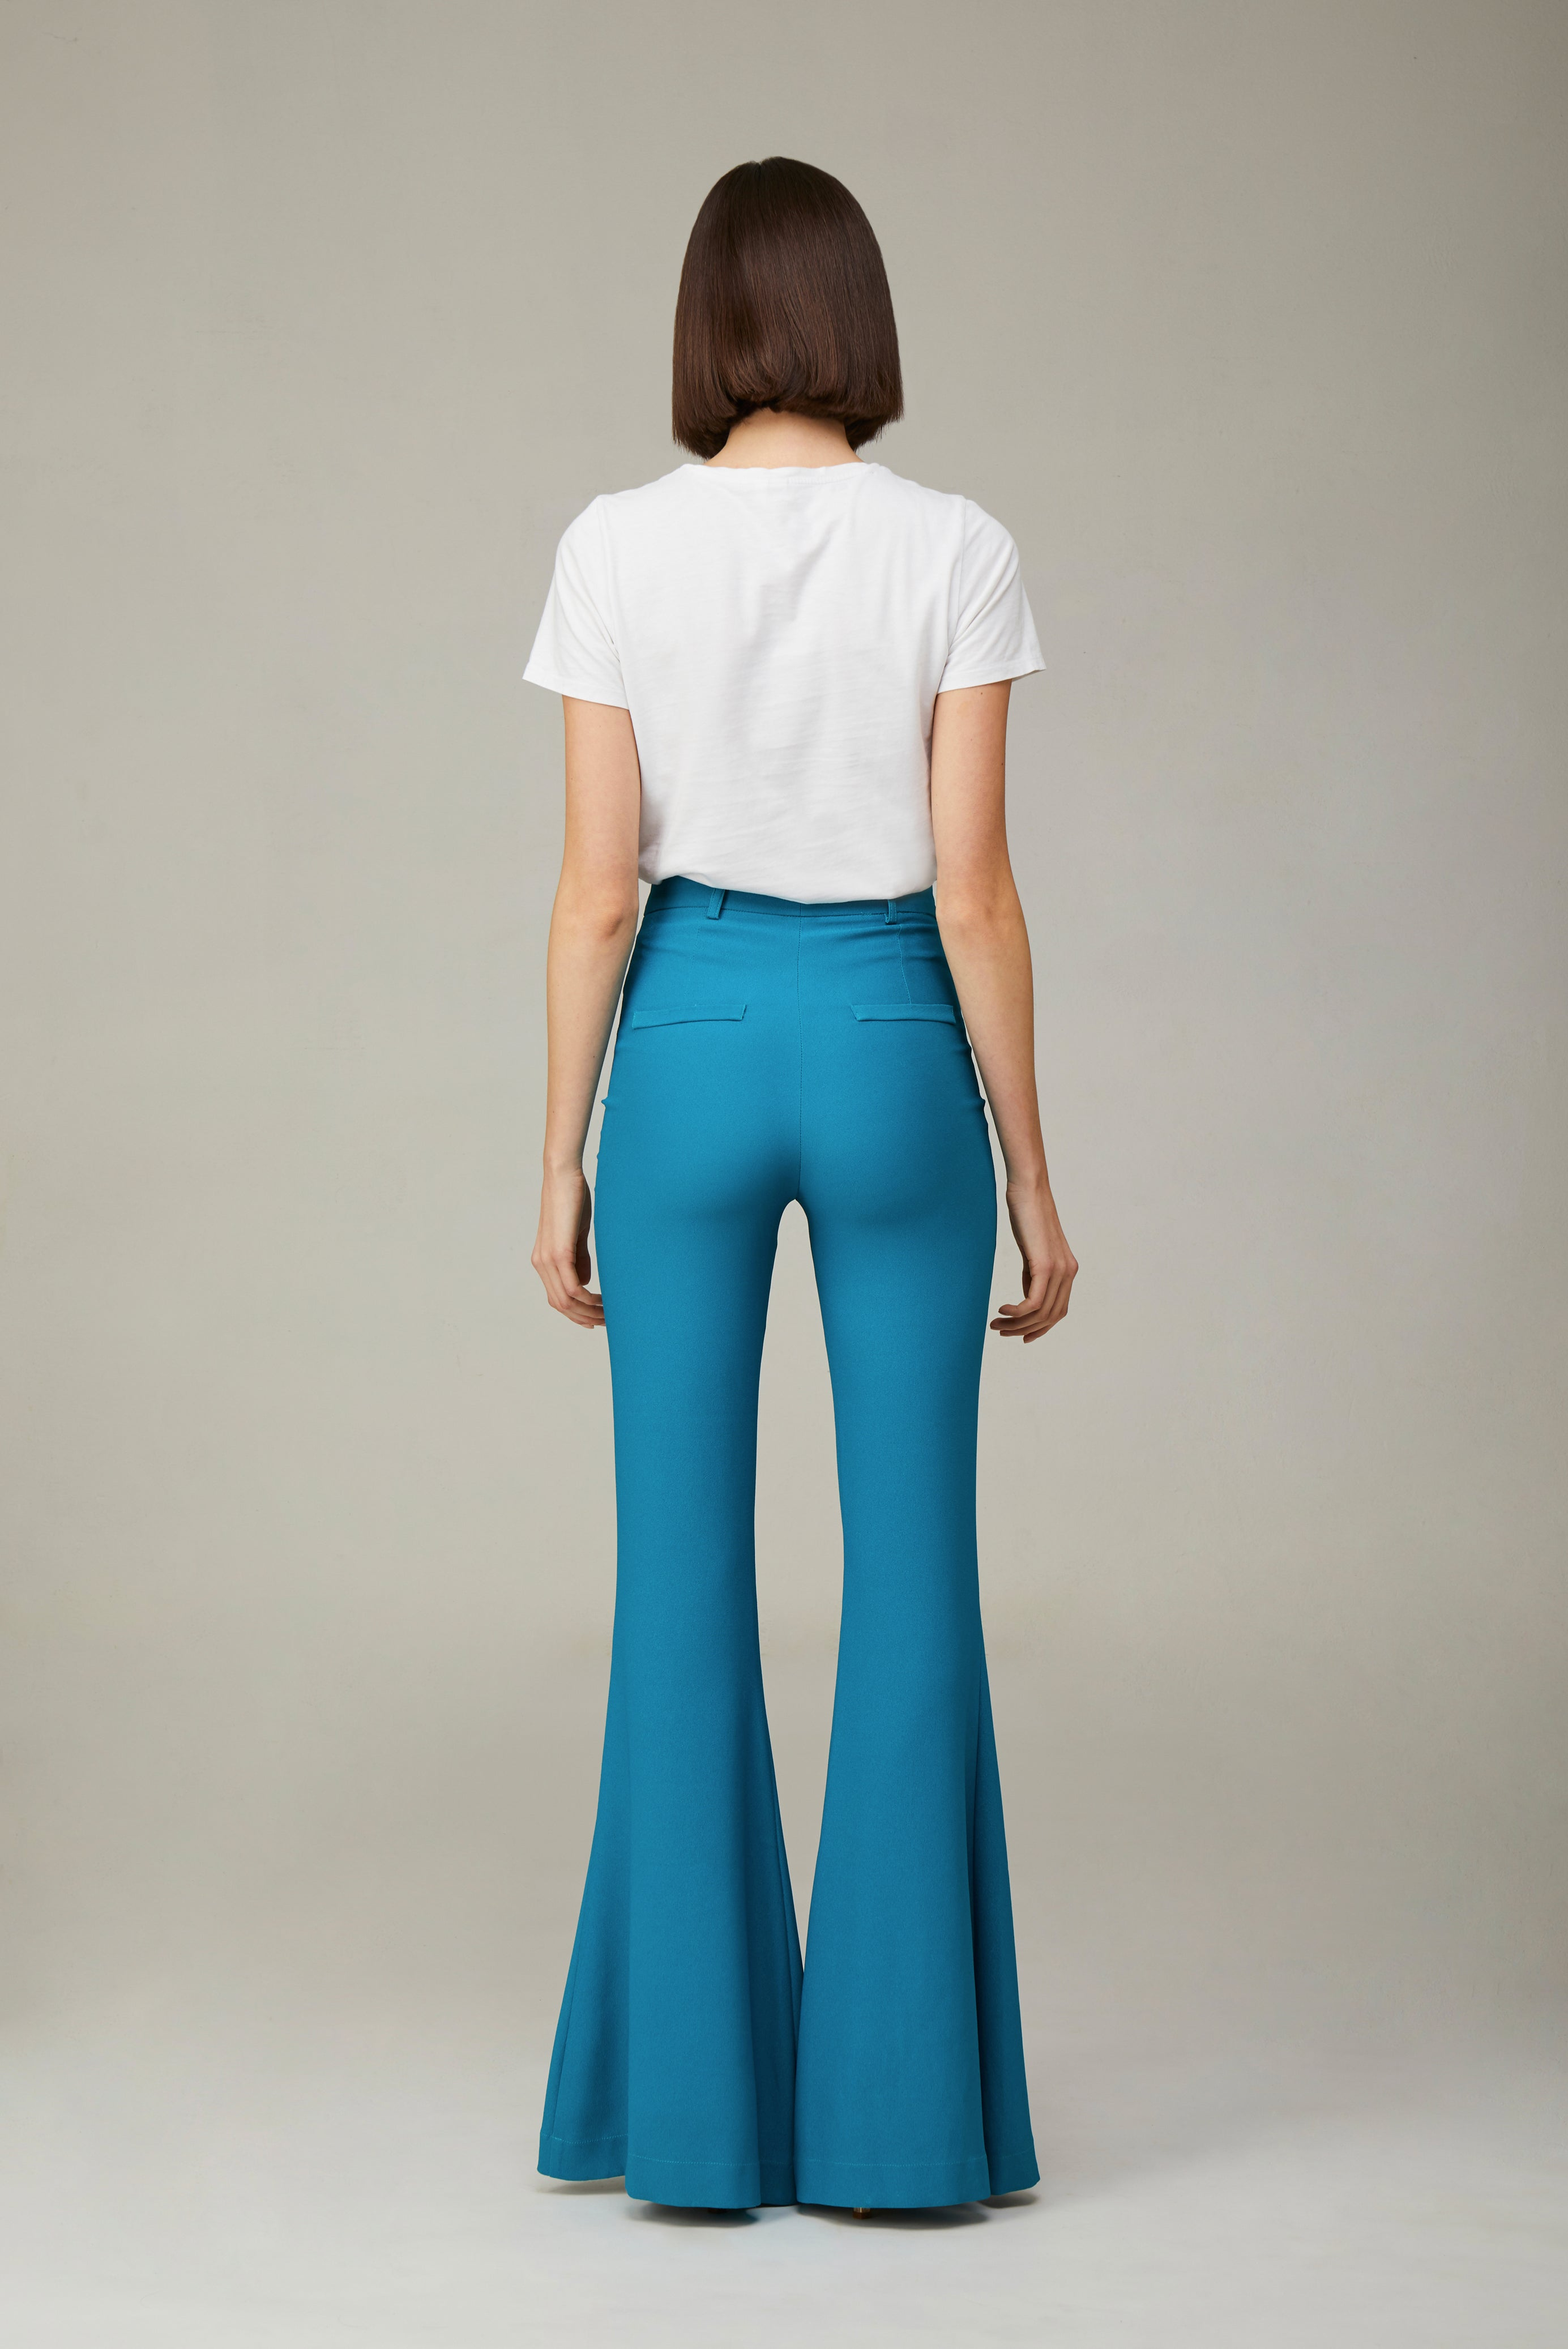 The Turquoise Bianca Pants